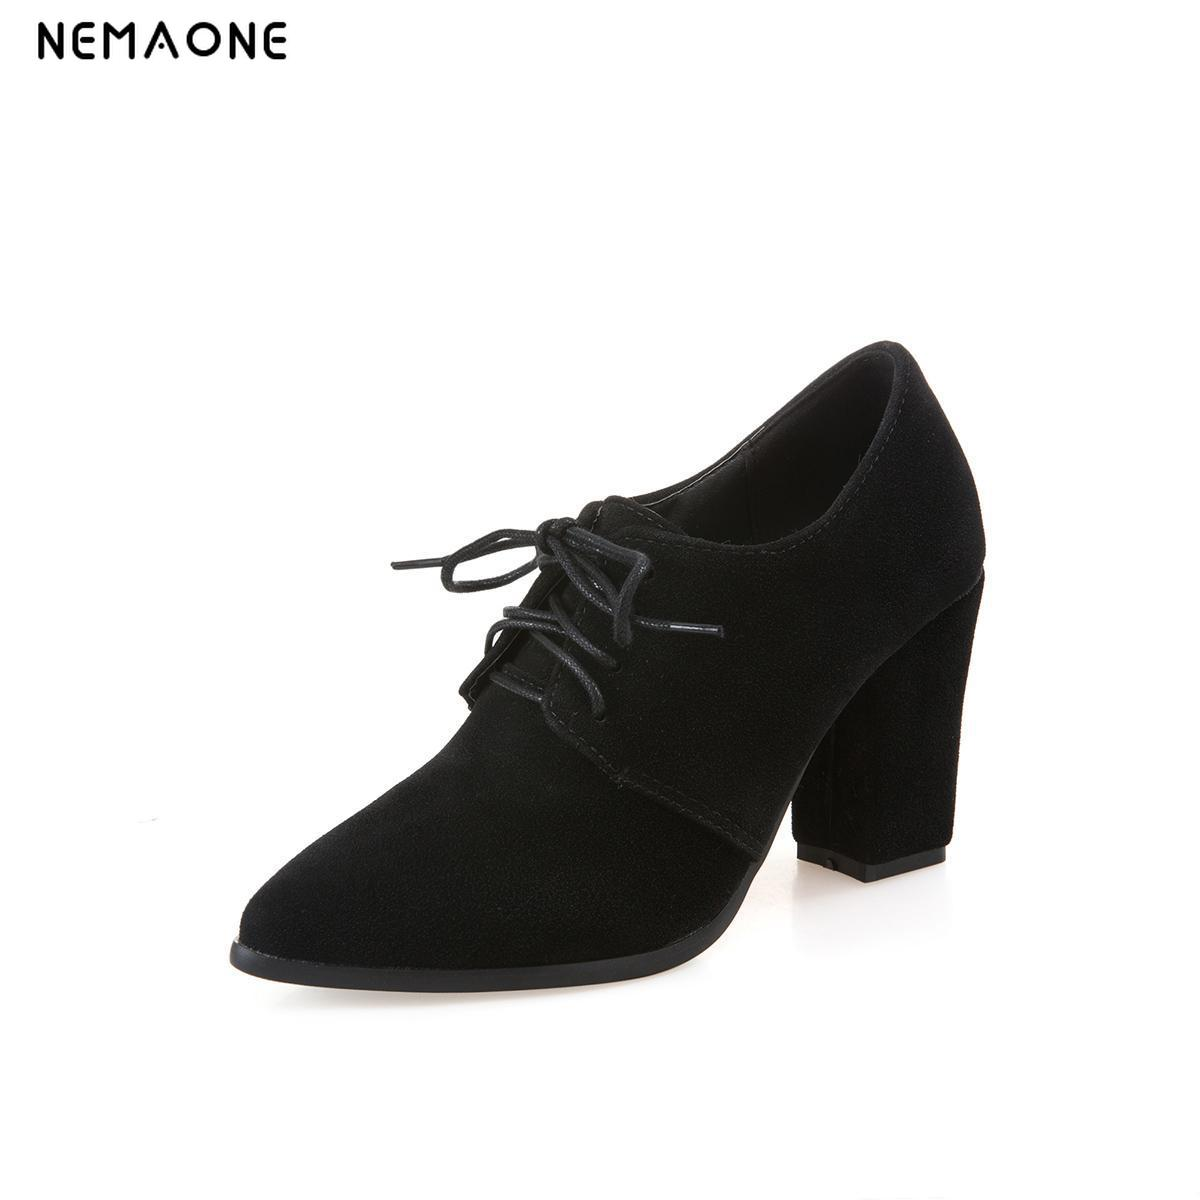 NEMAONE New Spring Autumn poined Toe Women Shoes Square Heels Lace Up Party Pumps Size 34-43 dress shoes woman  xiaying smile woman pumps shoes women spring autumn wedges heels british style classics round toe lace up thick sole women shoes